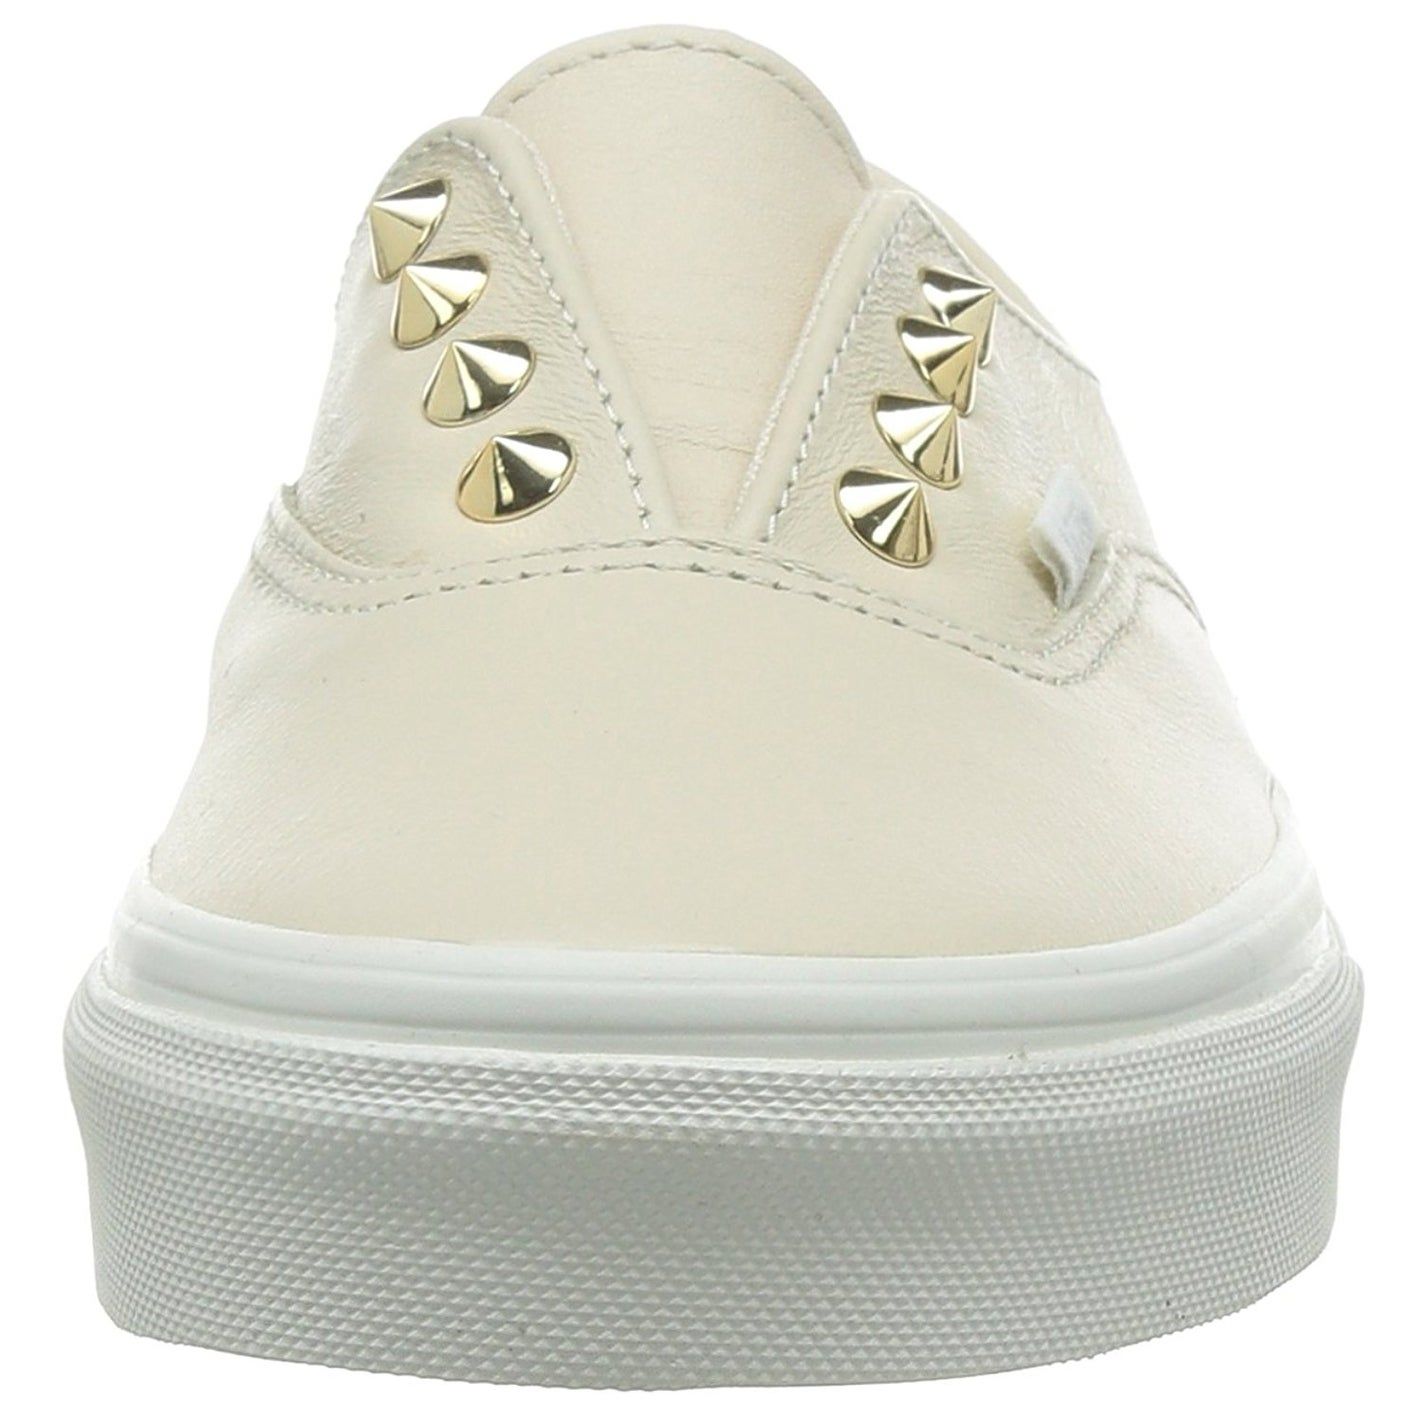 2fe437d09a8a Shop Vans Womens Authentic Gore Canvas Low Top Pull On Fashion Sneakers -  Free Shipping On Orders Over  45 - Overstock - 18539331